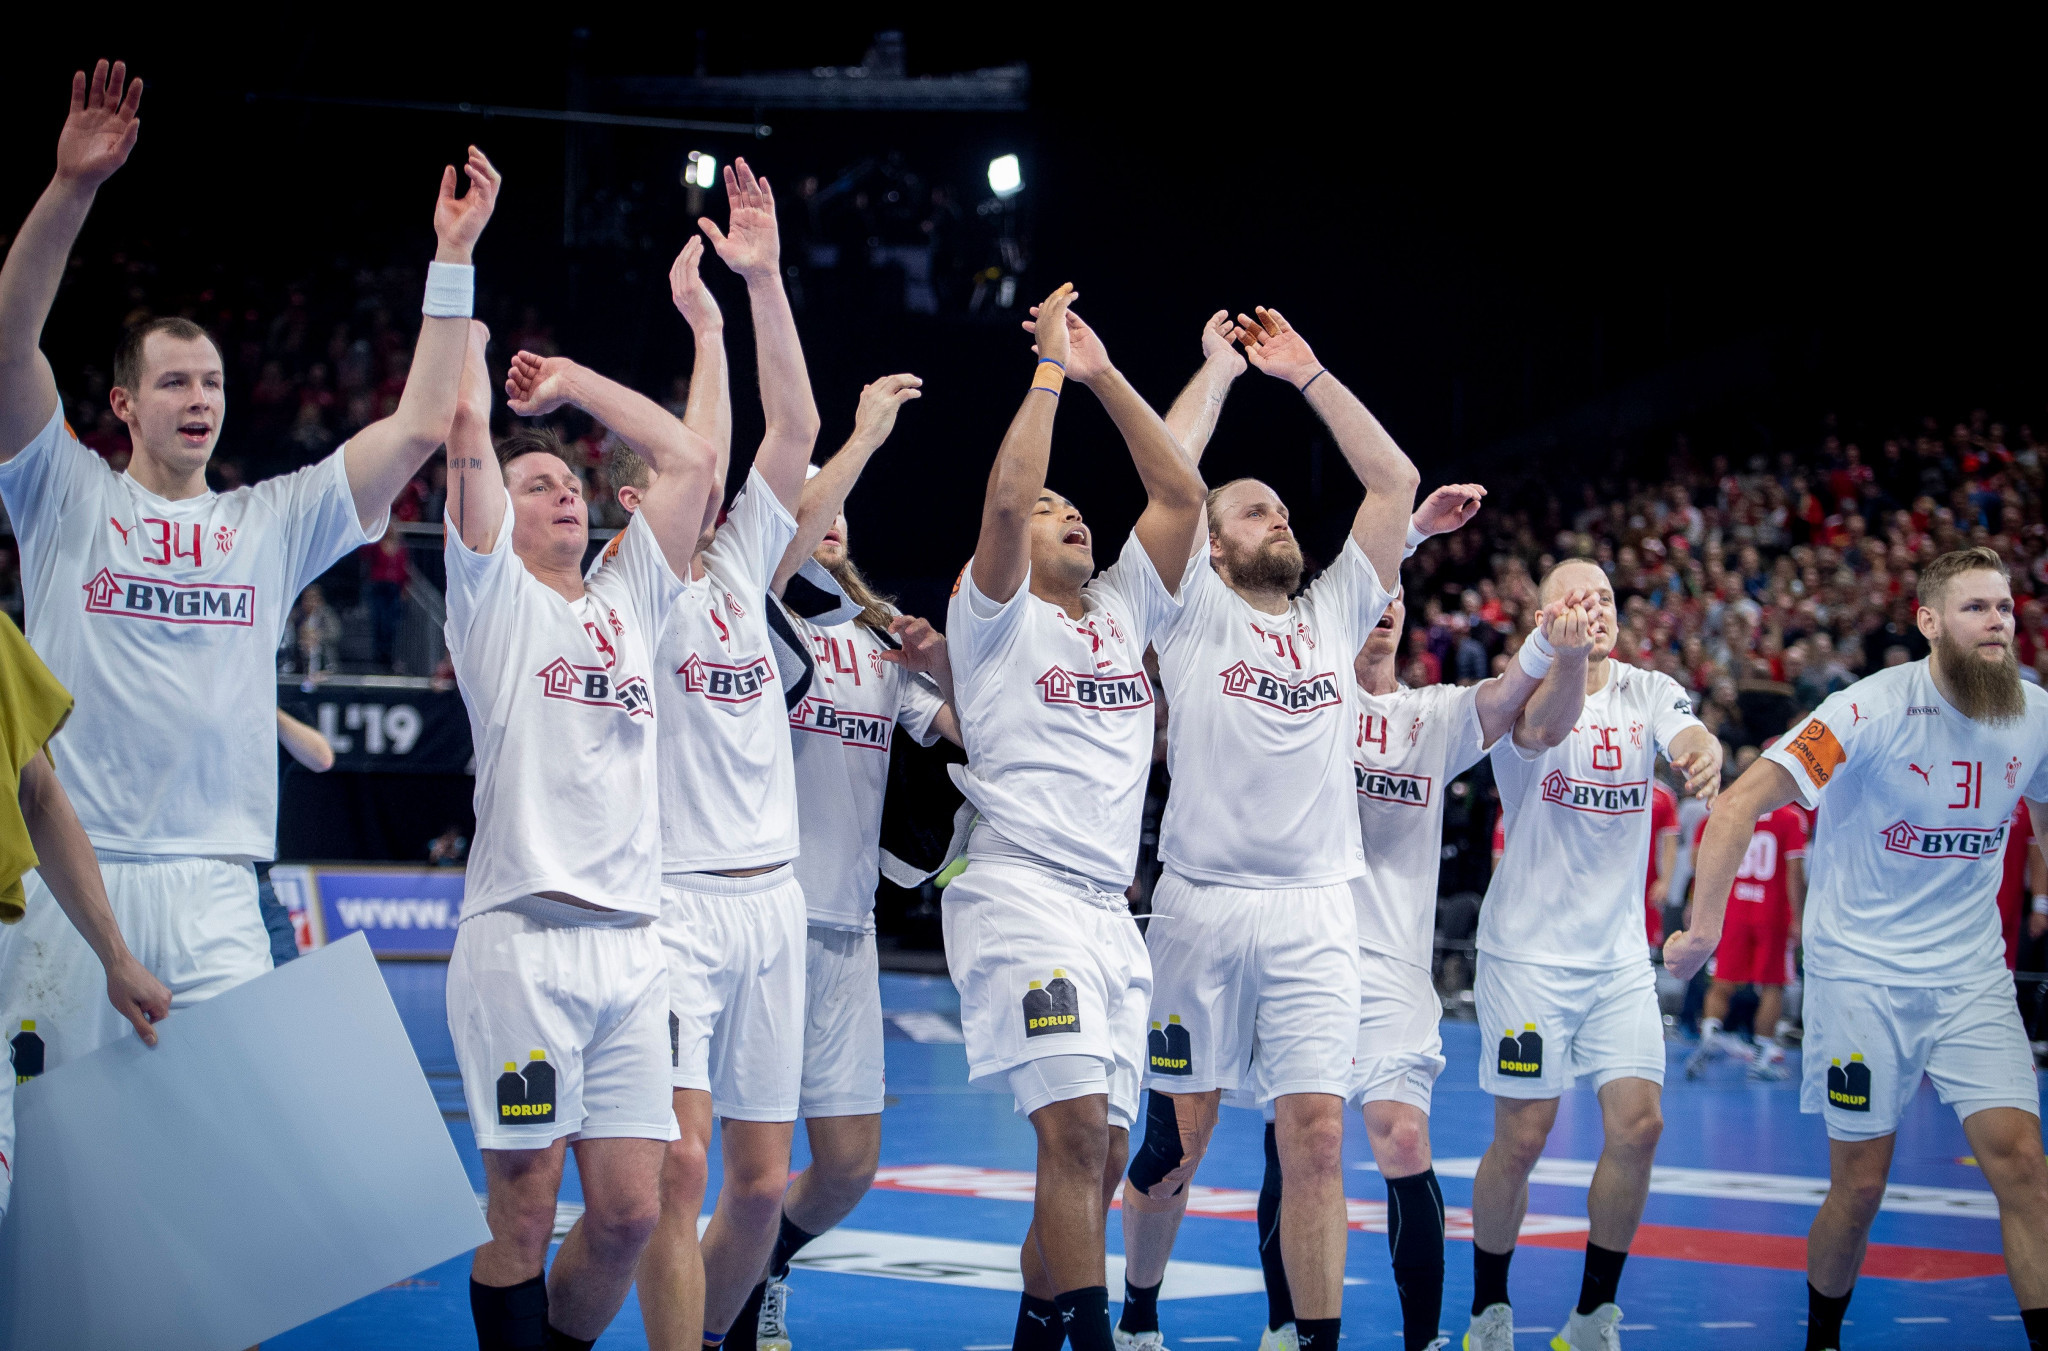 Denmark celebrate after beating Chile in their first game of the IHF Men's Handball World Championship ©Getty Images